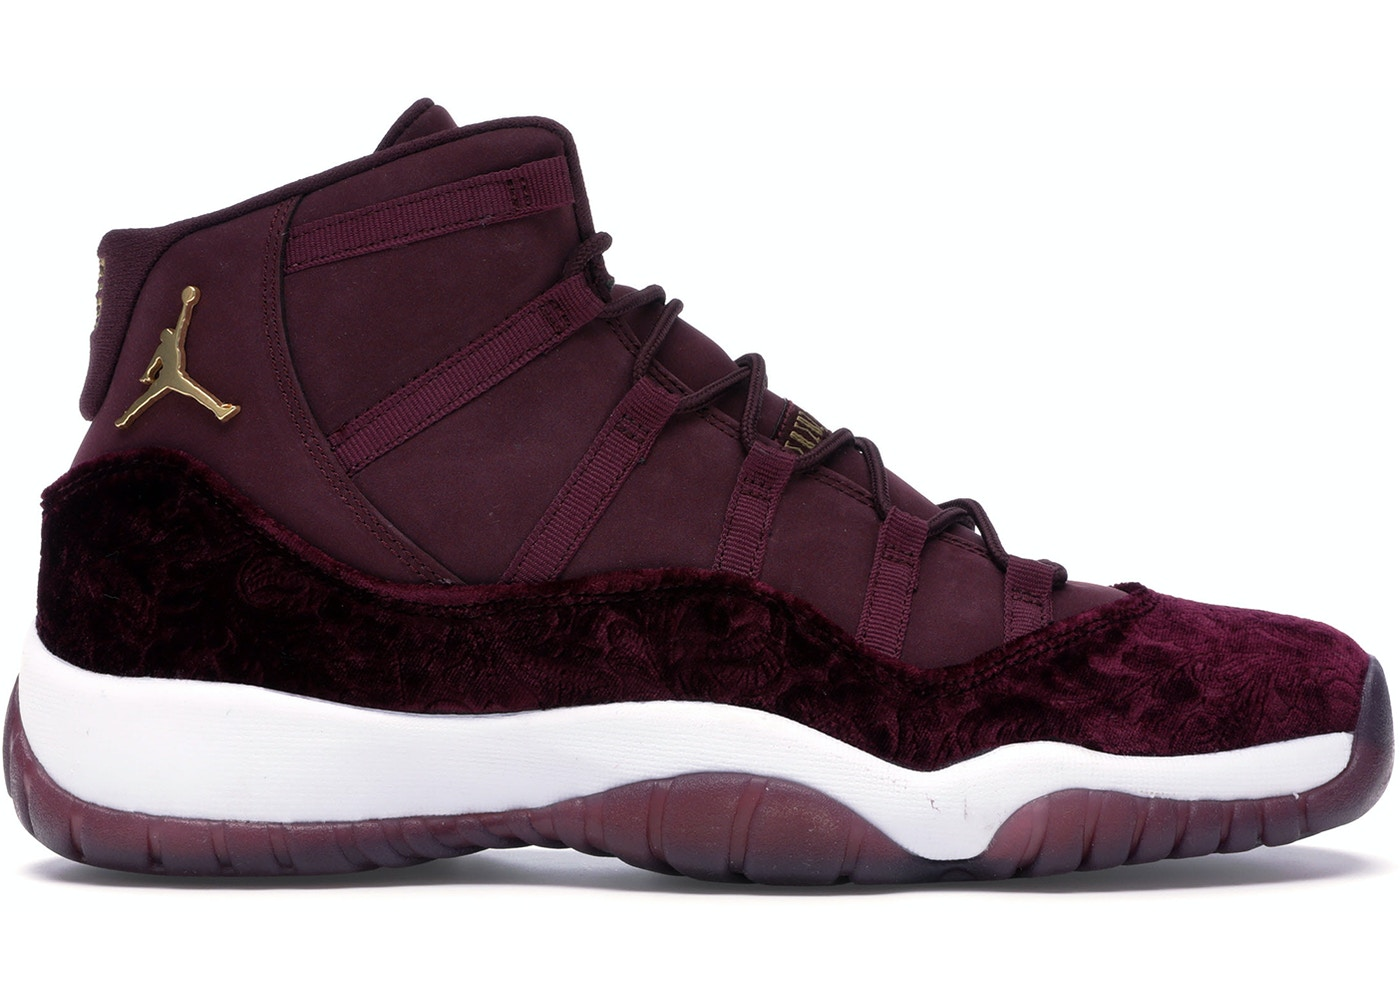 competitive price 71c99 7414d Jordan 11 Retro Heiress Night Maroon (GS) - 852625-650